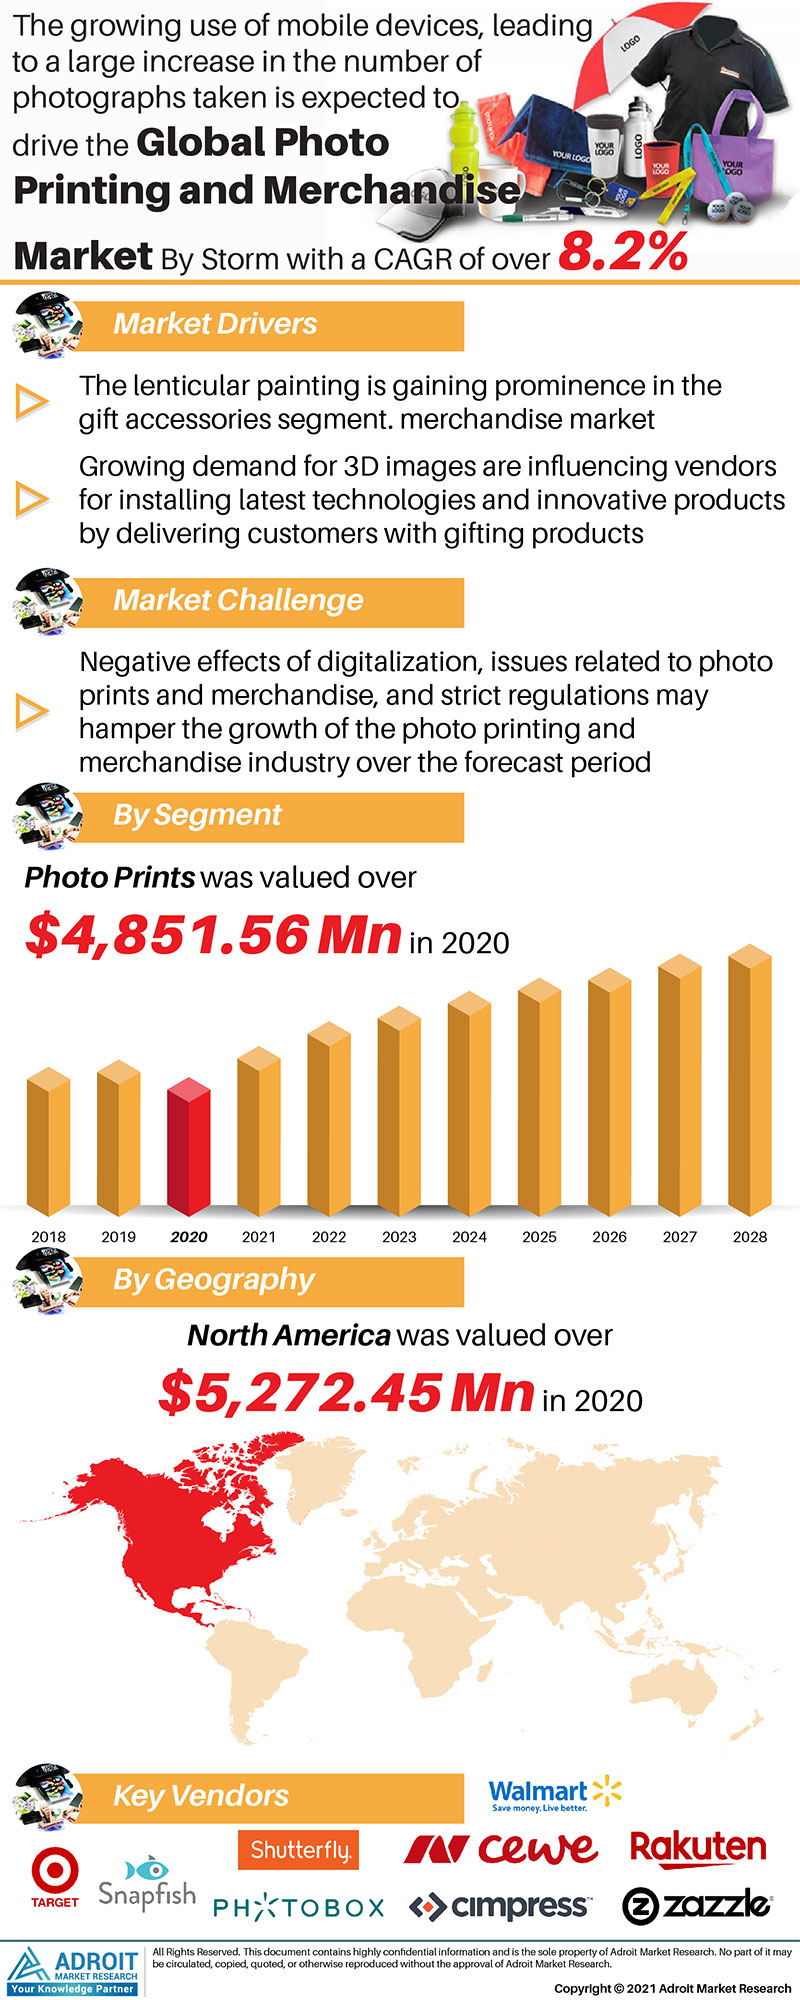 Photo Printing And Merchandise Market Size 2017 By Application, Product, Region and Forecast 2019 to 2025